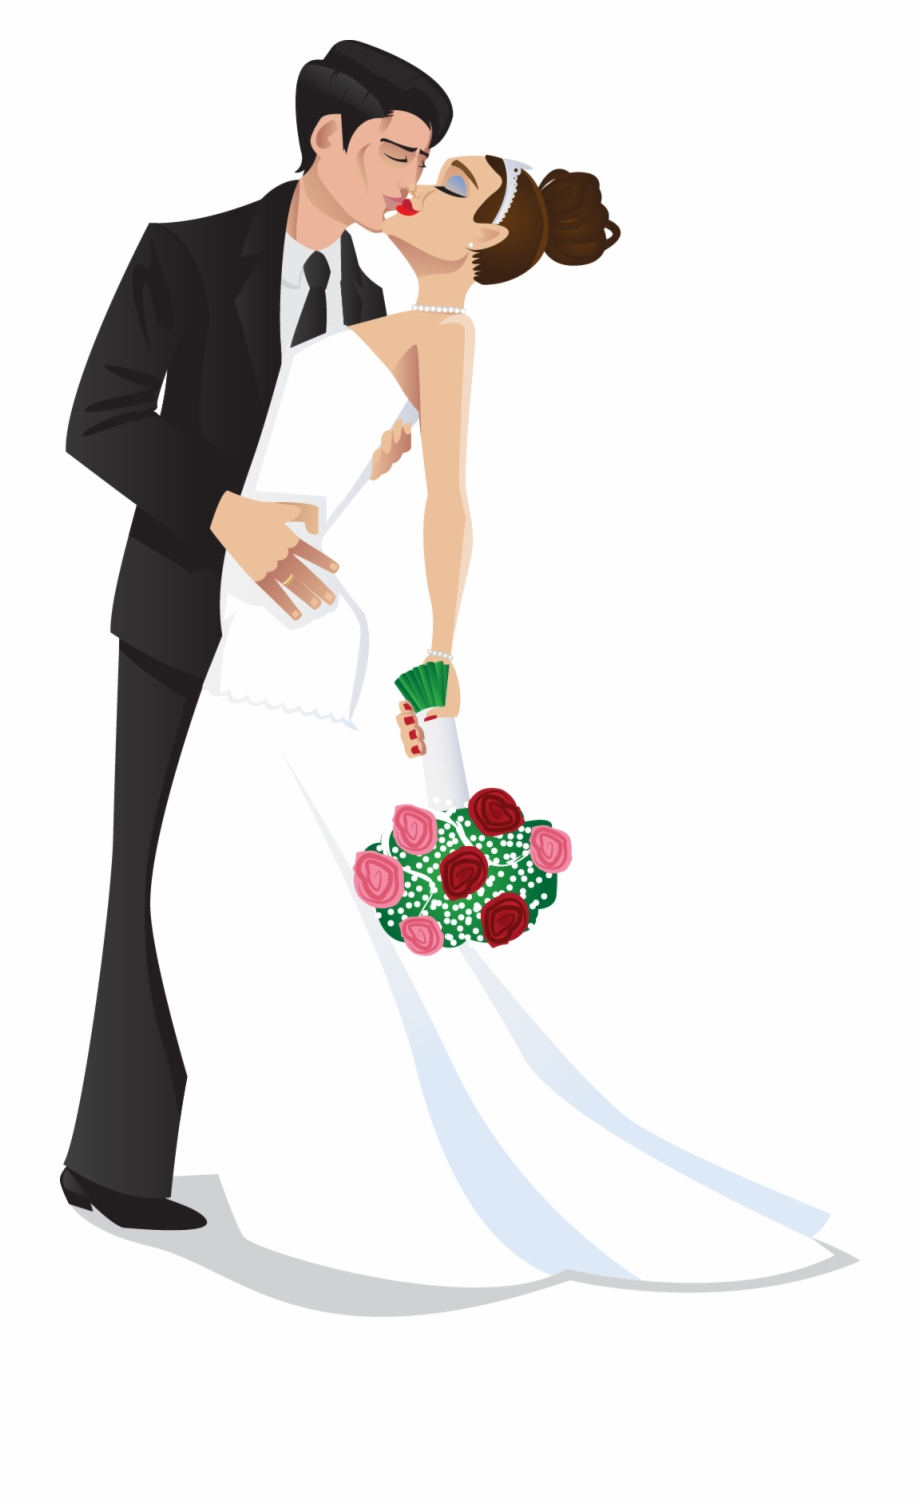 Bride and groom kissing clipart jpg royalty free stock Bride And Groom Kiss Wedding Bride Groom Clipart The - Clipart Bride ... jpg royalty free stock